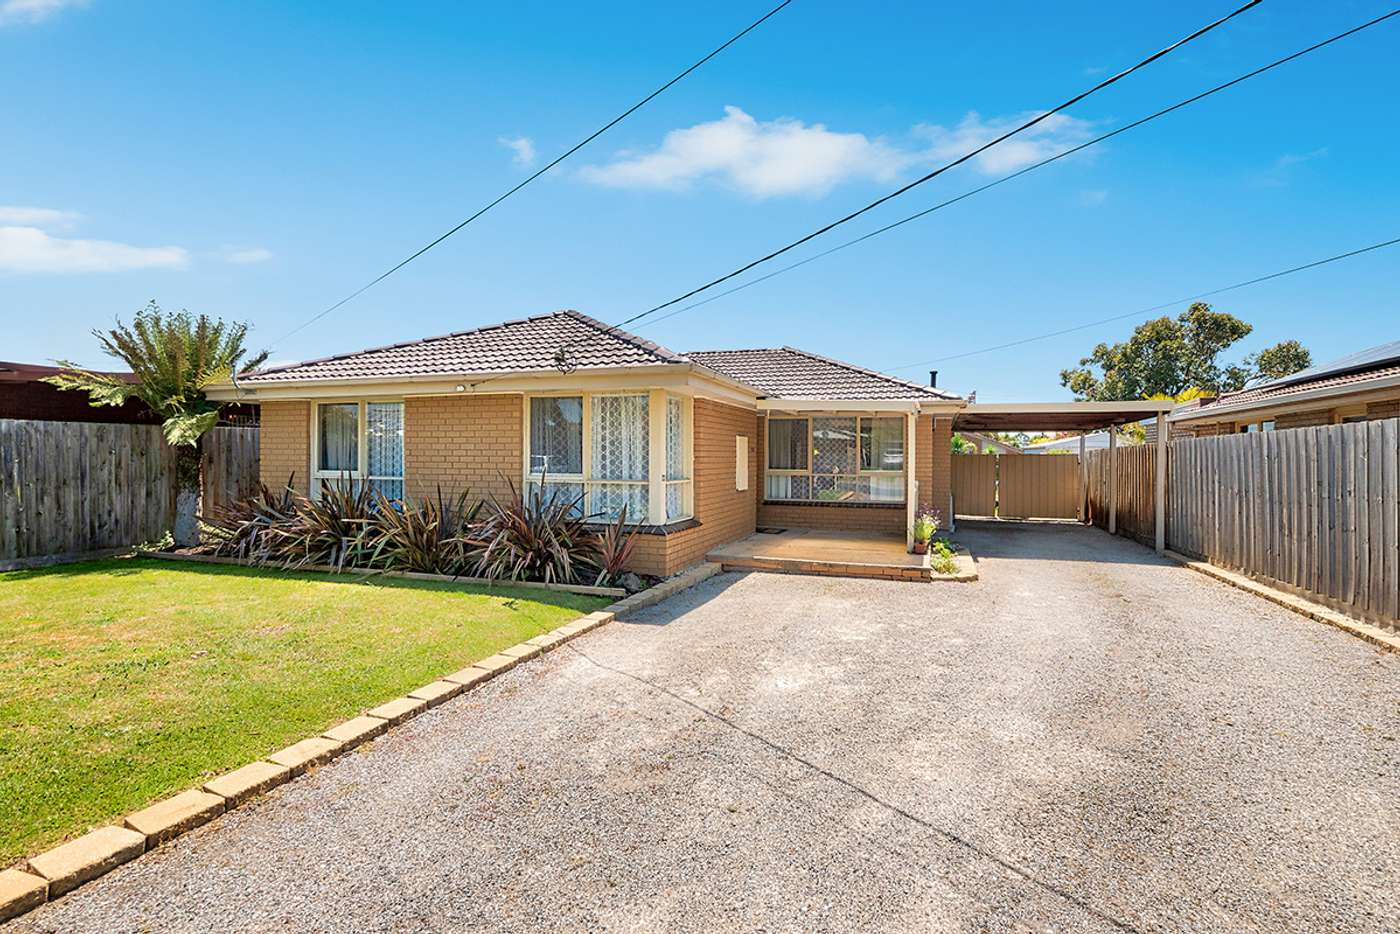 Main view of Homely house listing, 33 Fenfield Street, Cranbourne VIC 3977